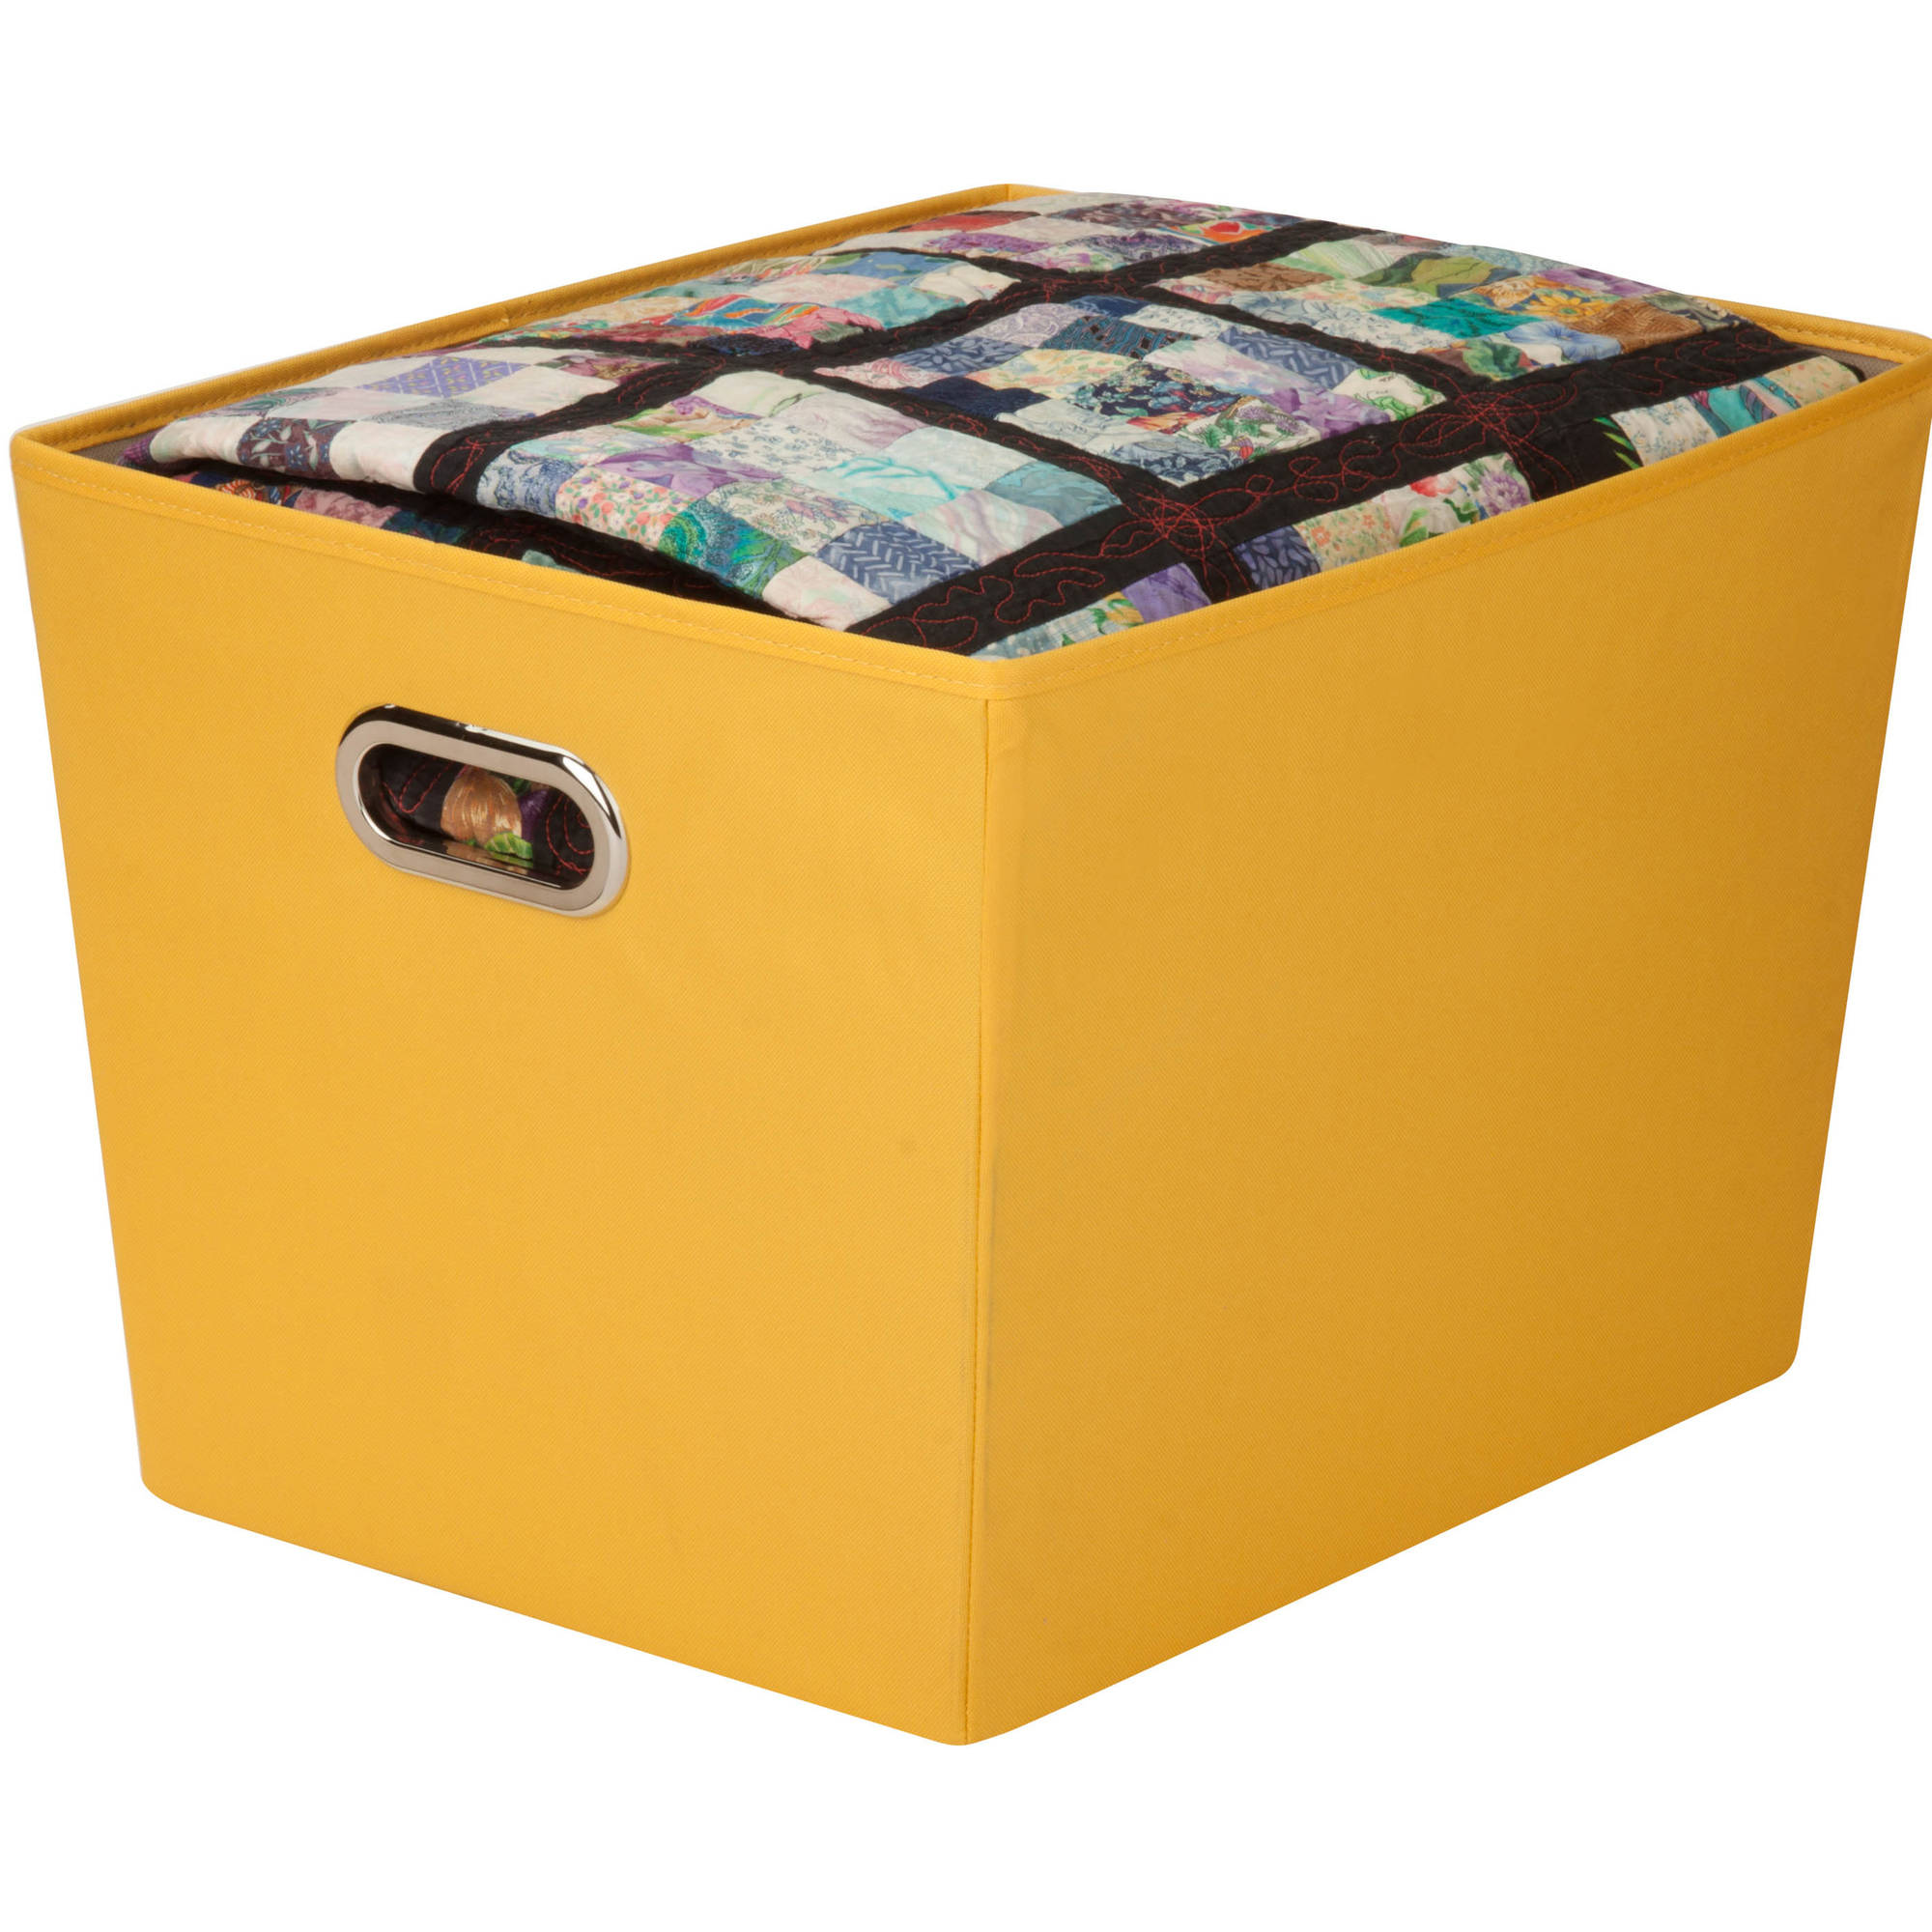 Honey Can Do Large Decorative Storage Bin with Tote Handles, Multicolor